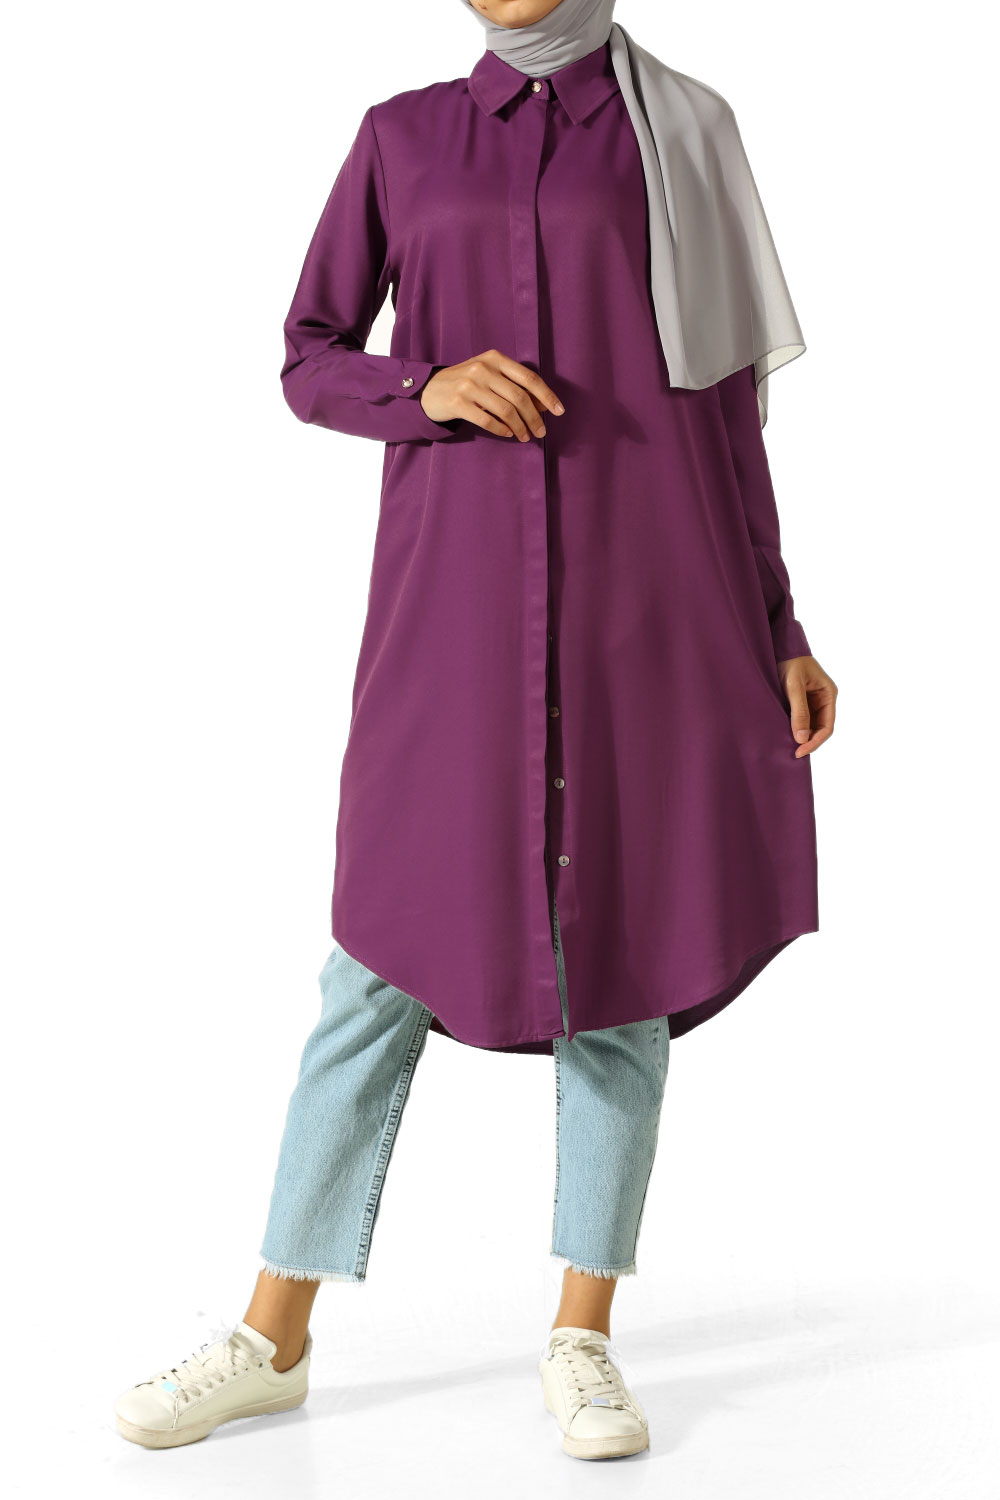 BASIC TUNIC WITH HIDDEN BUTTONS